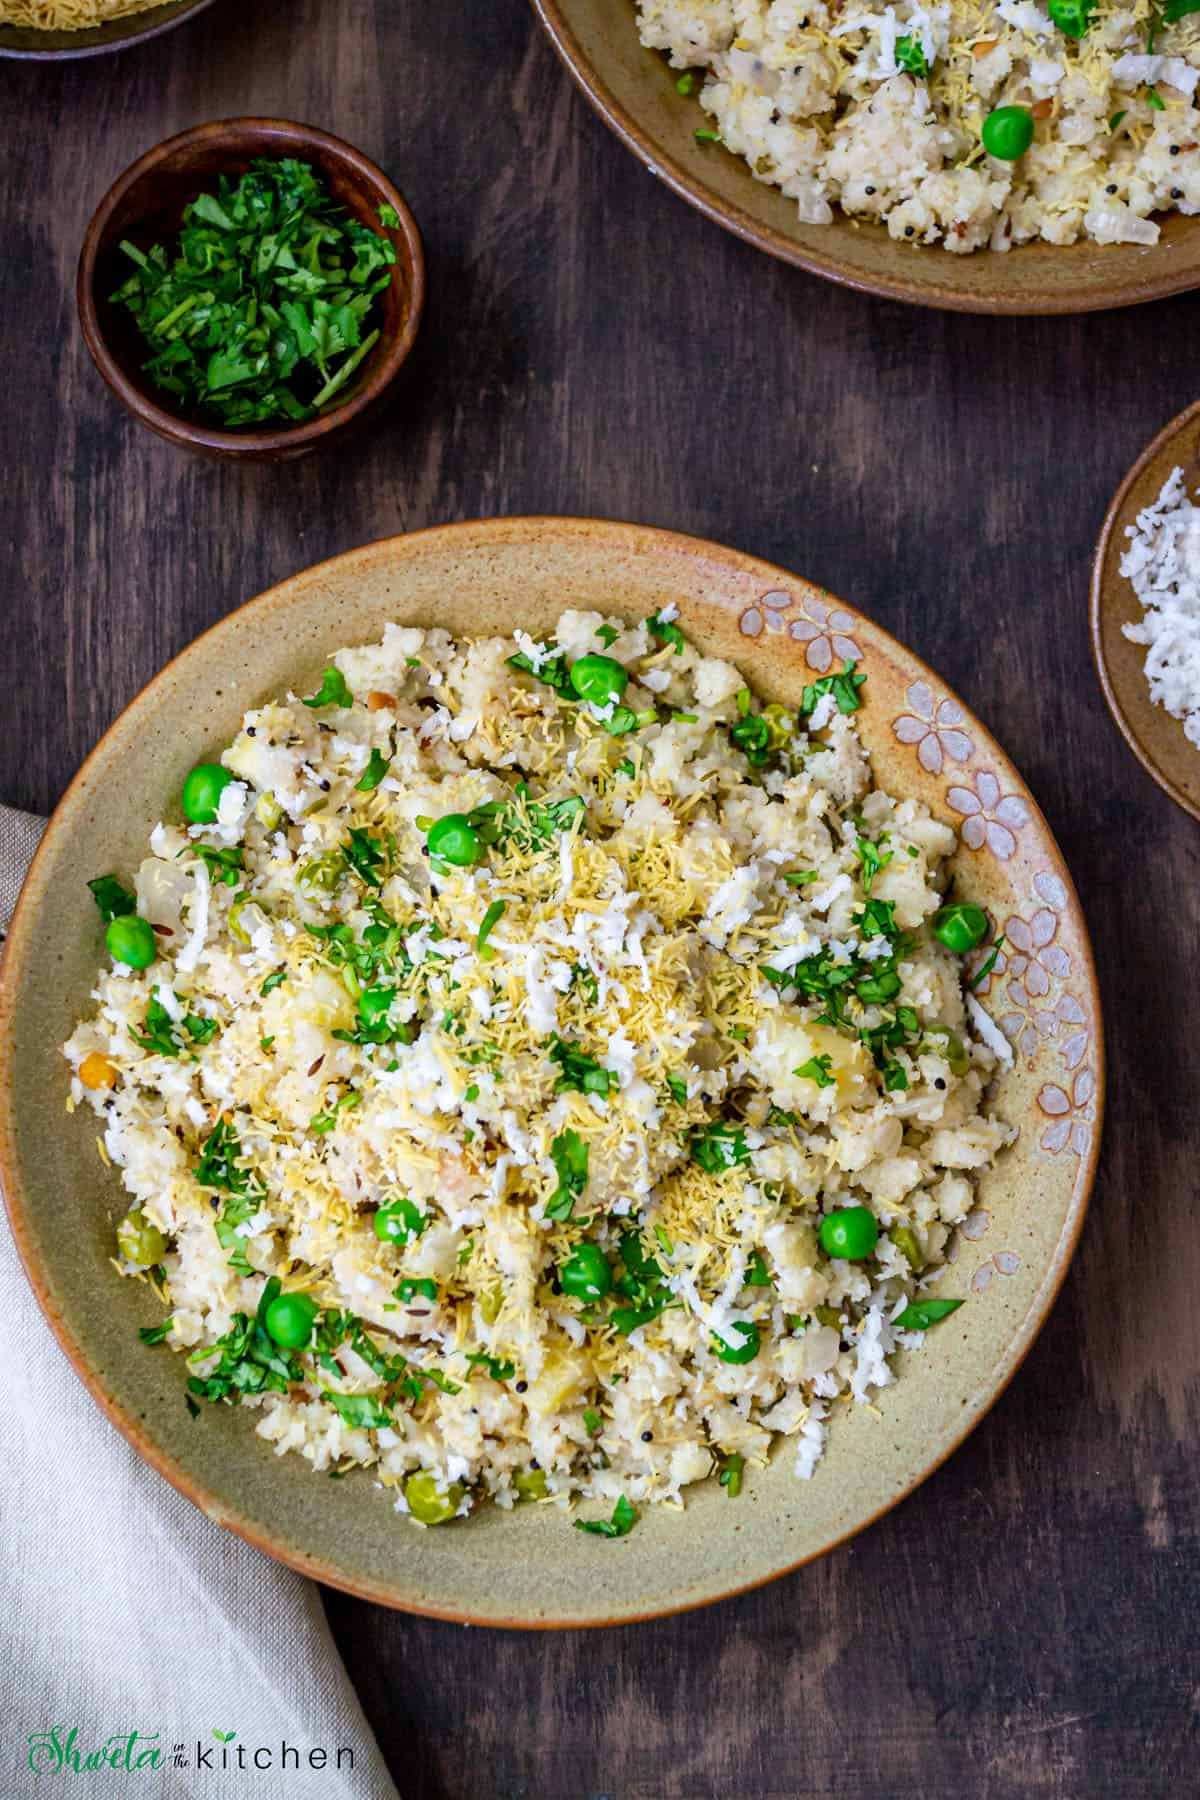 Top view of bowl of rava upma garnished with green peas and sev, and coconut.